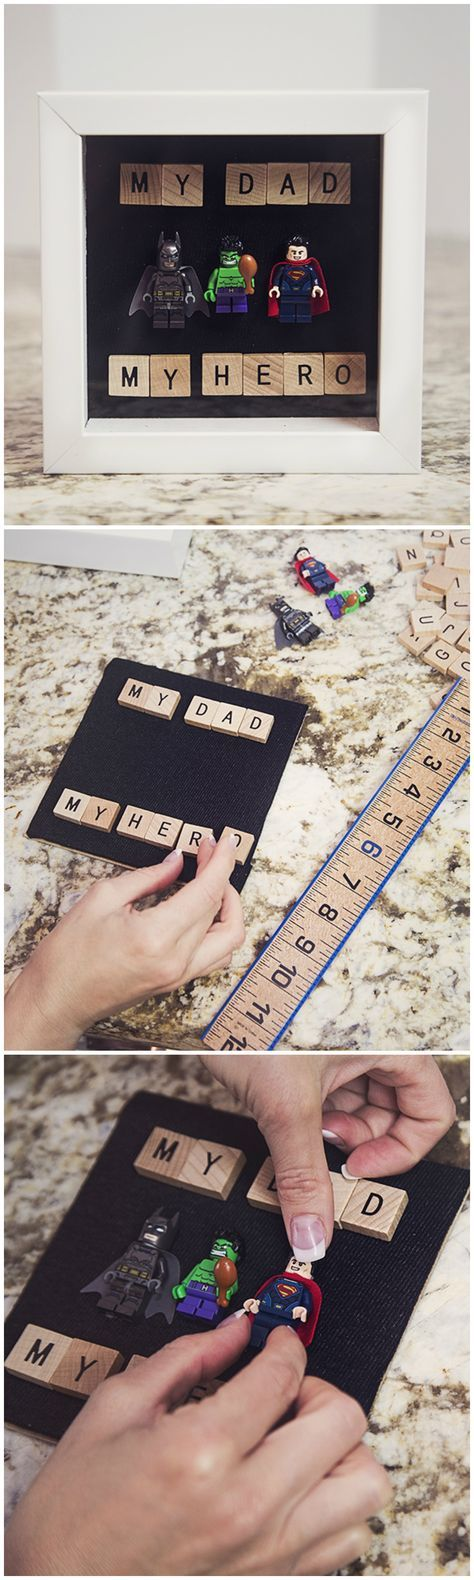 DIY: Father's Day Superhero Keepsake! Happy Father's Day, Father's Day, Father, Dad, Daddy, craft, diy, easy diy, easy crafy, scrabble, superhero, superheroes, gift, gift ideas, father's day gift idea, legos, art, crafty, fathers day, holiday,